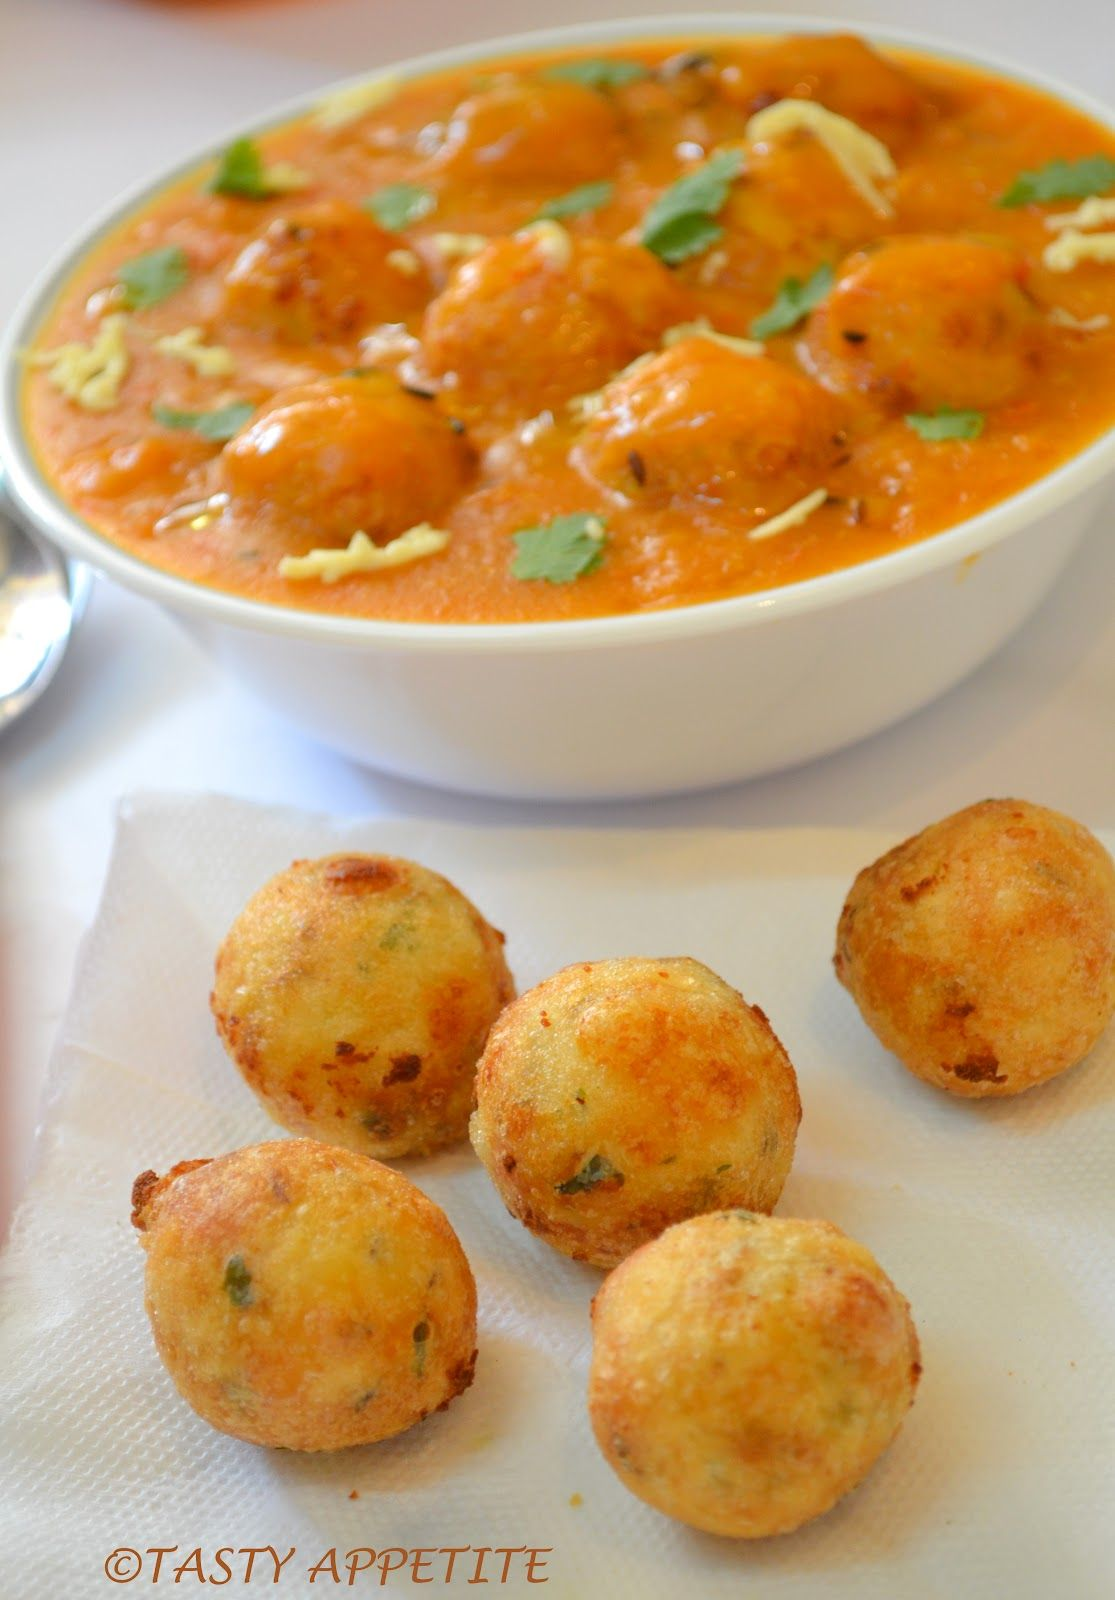 Malai kofta like us on youtube for more video recipes malai koftas malai kofta like us on youtube for more video recipes malai koftas is a delicious forumfinder Image collections